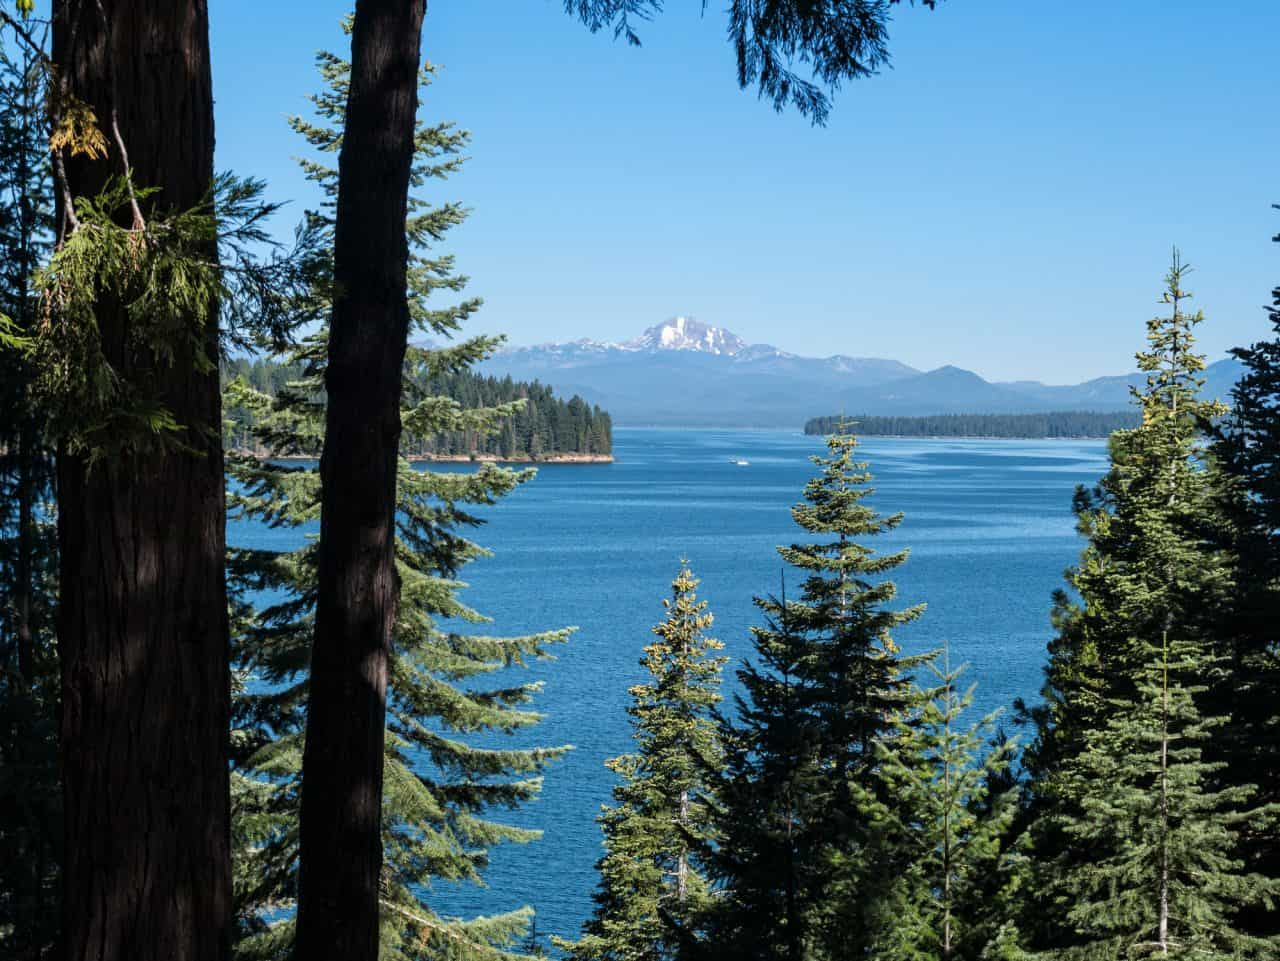 Looking at Lake Almanor though the Pine trees.